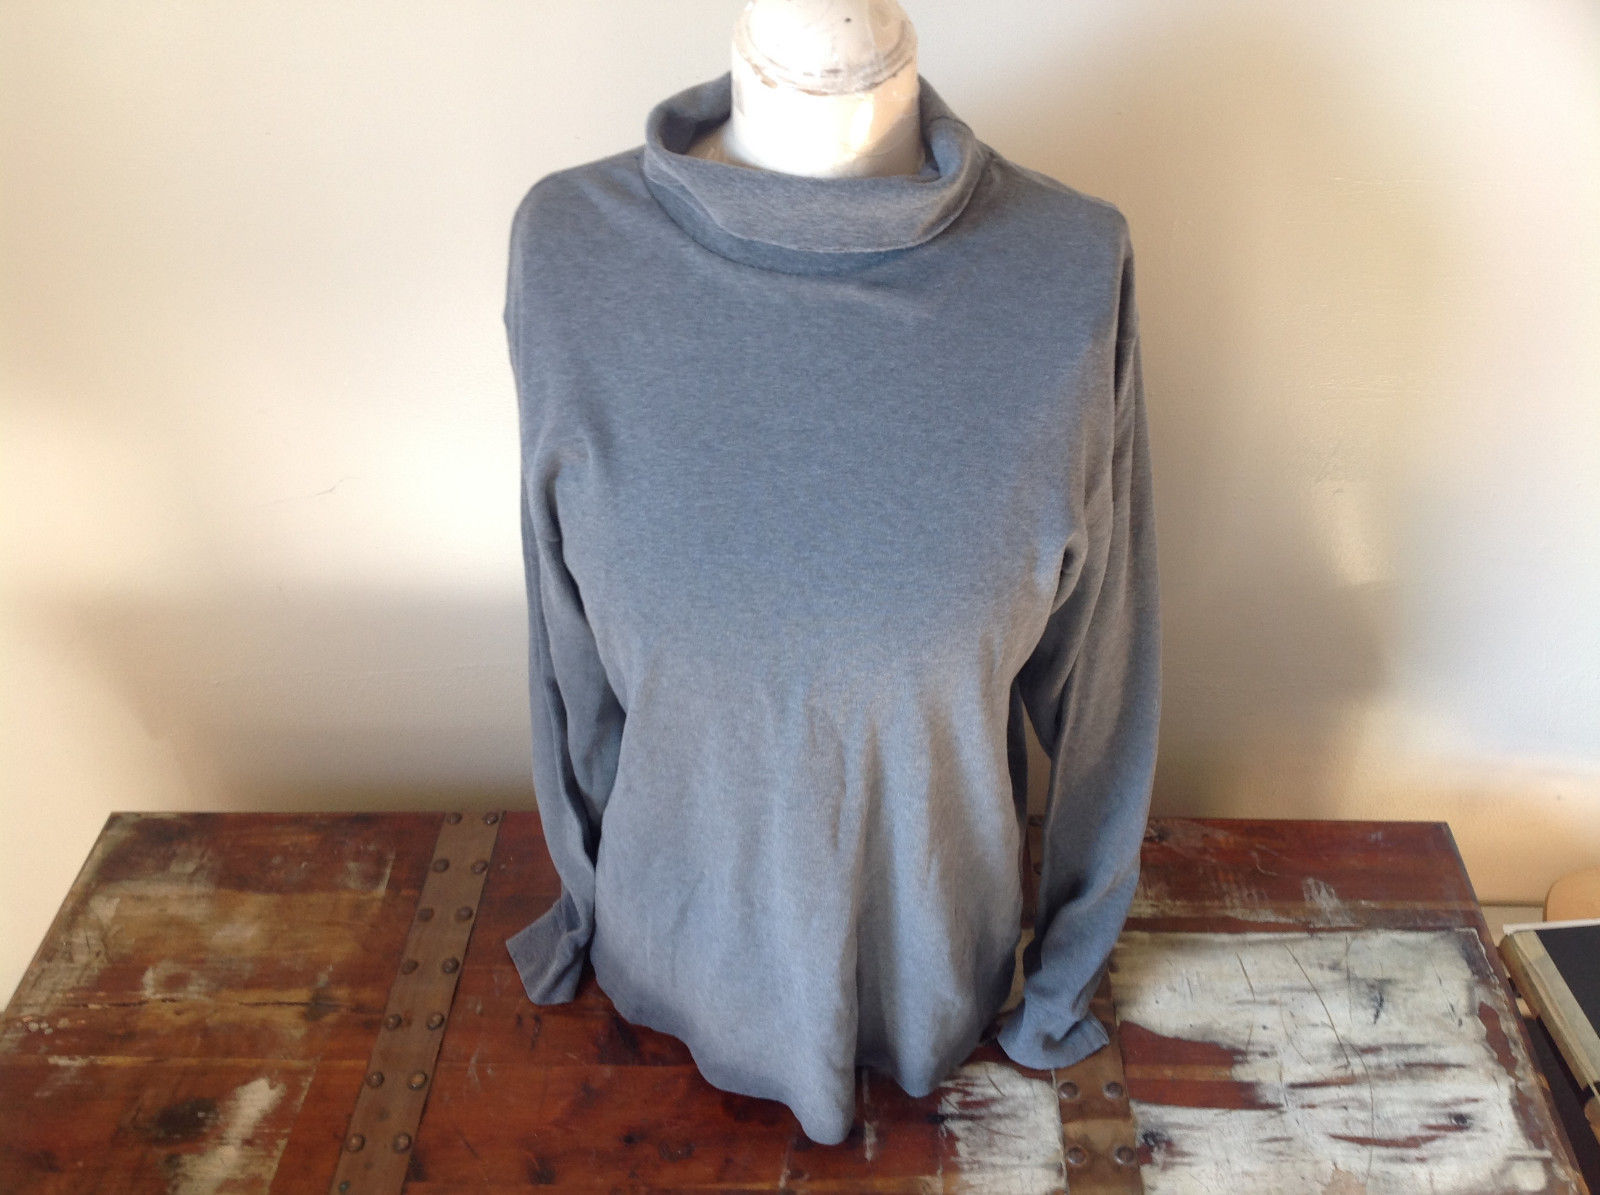 Gray Long Sleeve Turtleneck Stretchy Shirt L L Bean Size and Measurements Below